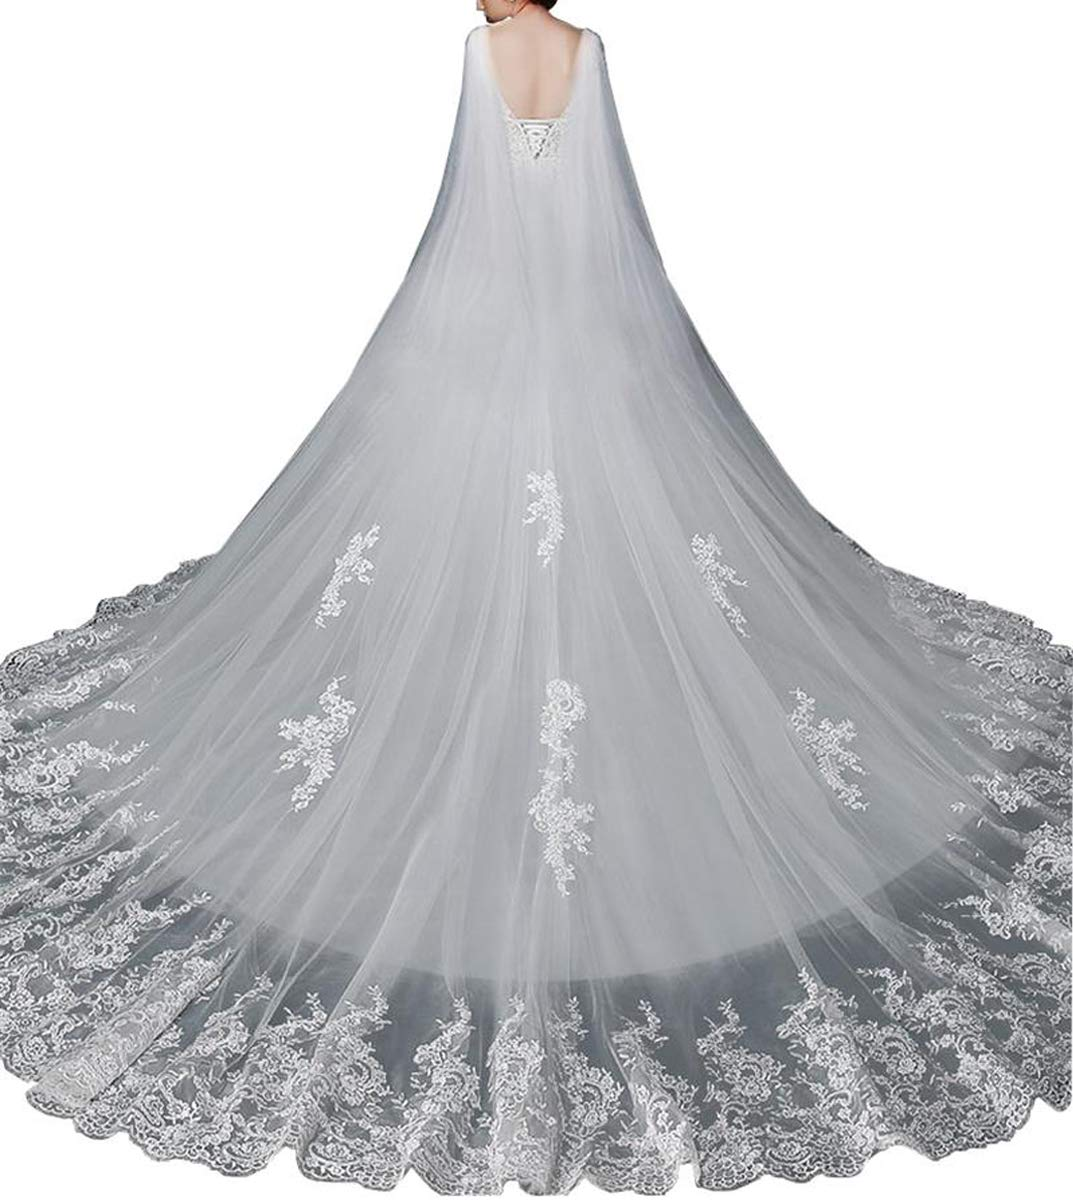 Stylish Tulle Cape Veil Cathedral Length Lace From Shoulder to Floor For Bridal 2018 (White, 5Meter)